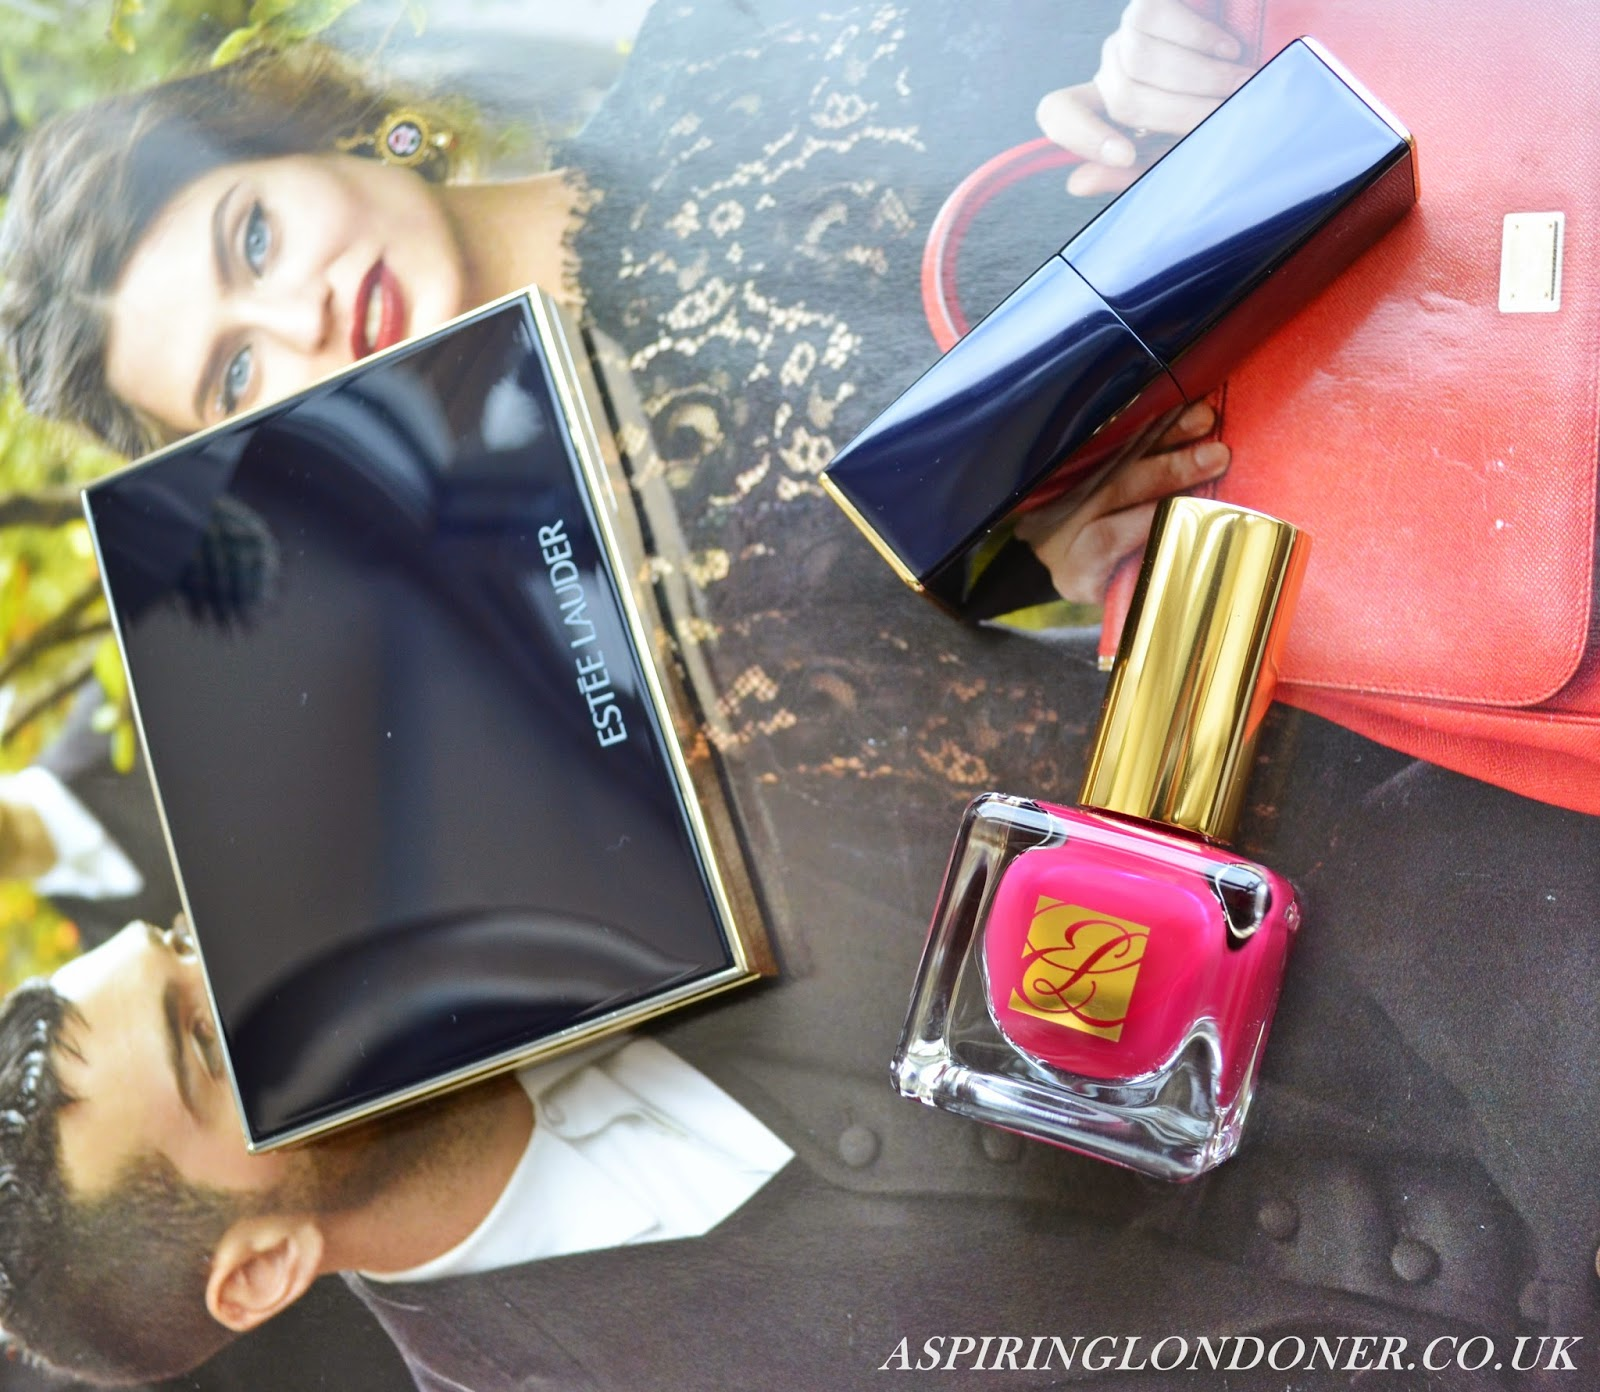 Estee Lauder Pure Color Envy Collection - Aspiring Londoner